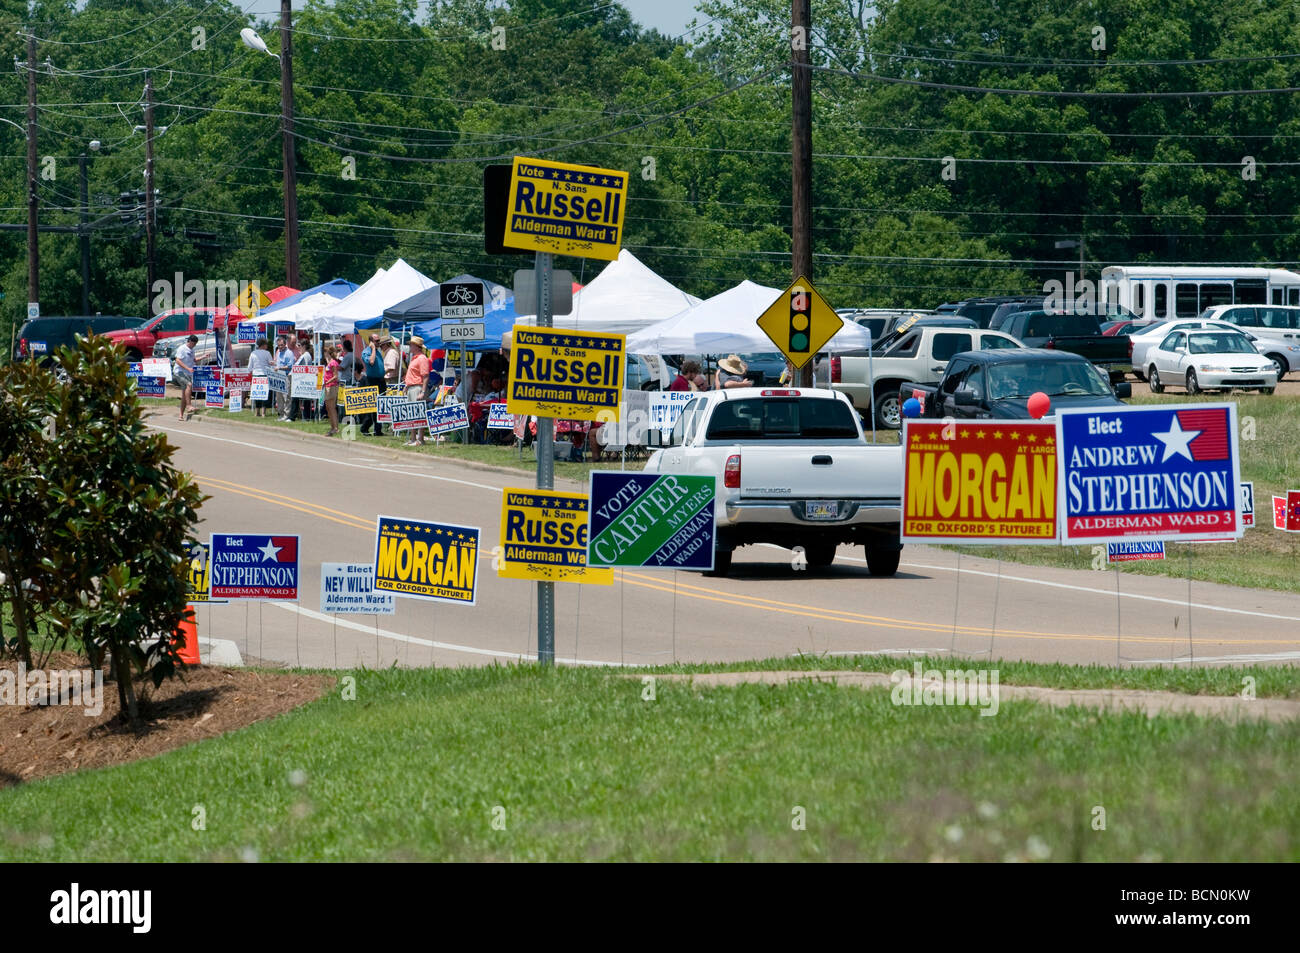 Campaigning for local mayor election, Oxford, Mississippi, US - Stock Image